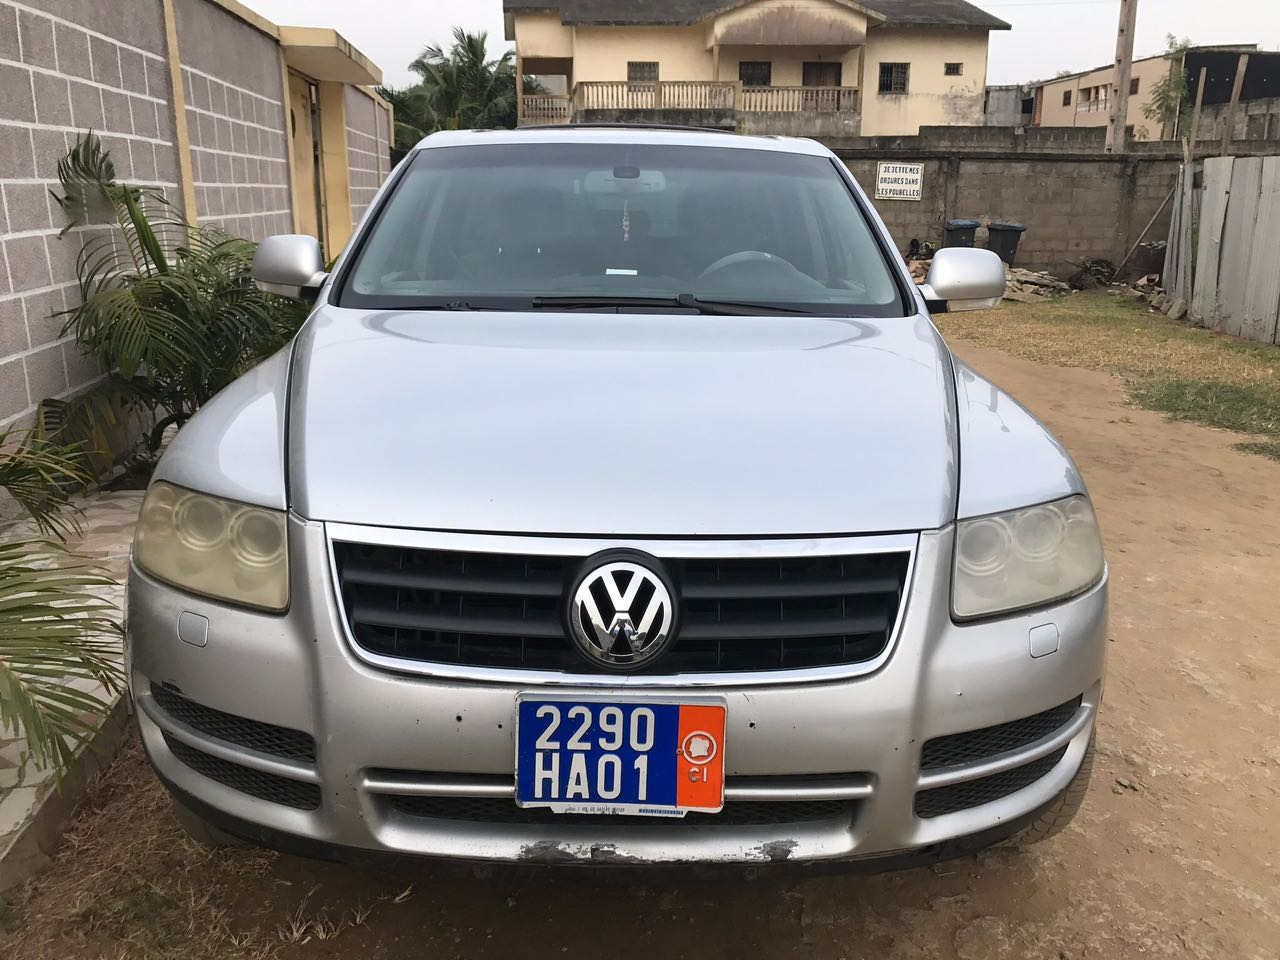 volkswagen touareg 2006 165000 km a vendre co t 5 500 000 fcfa ttc. Black Bedroom Furniture Sets. Home Design Ideas